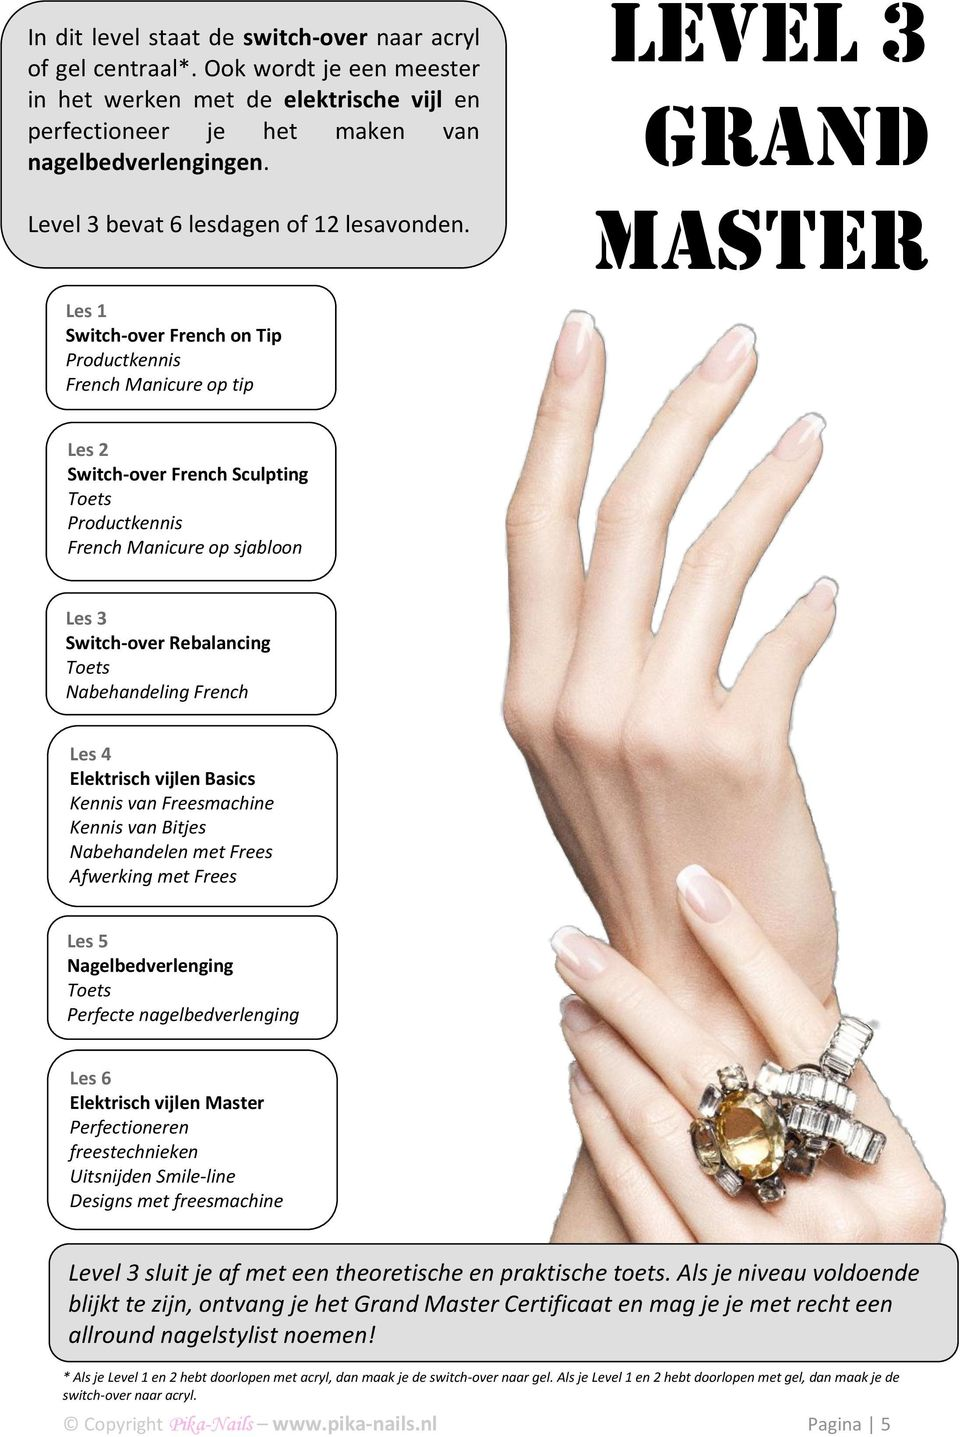 Level 3 Grand Master Switch-over French on Tip Productkennis French Manicure op tip Switch-over French Sculpting Productkennis French Manicure op sjabloon Switch-over Rebalancing Nabehandeling French